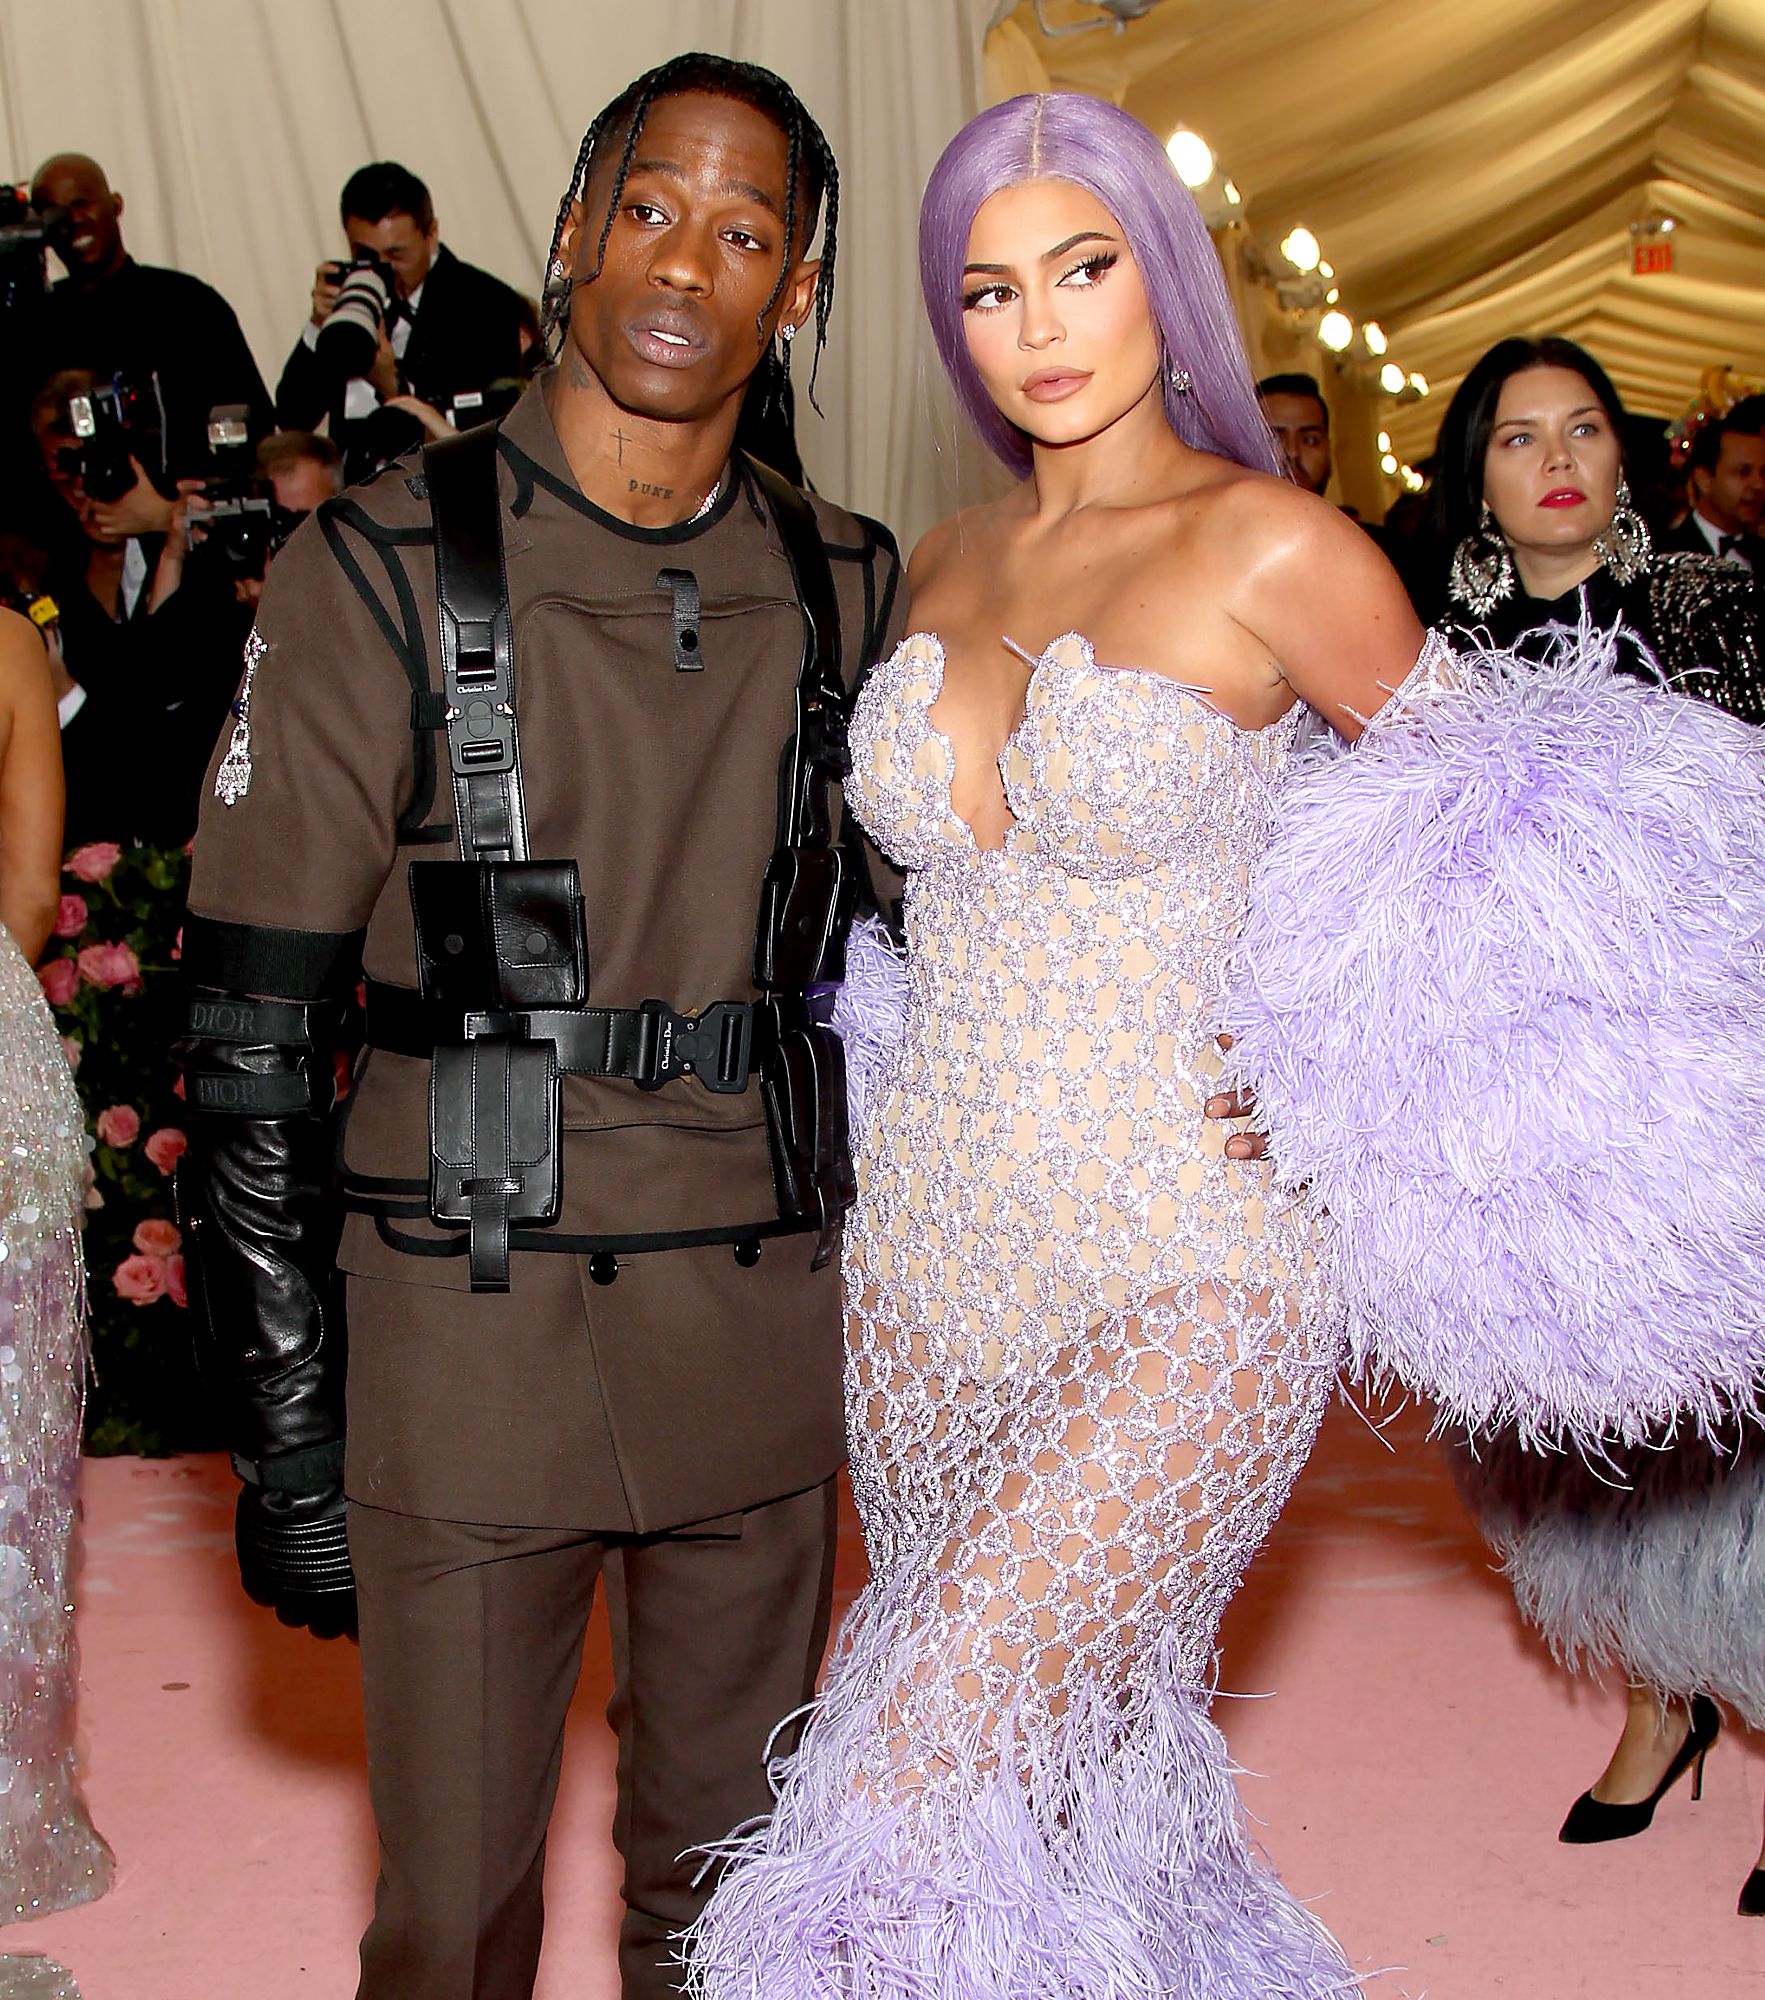 Kylie Jenner And Travis Scott Are Not Back Together They Have Two Different Lives Us Weekly Travis scott height weight body measurements shoe size age ethnicity. kylie jenner and travis scott are not